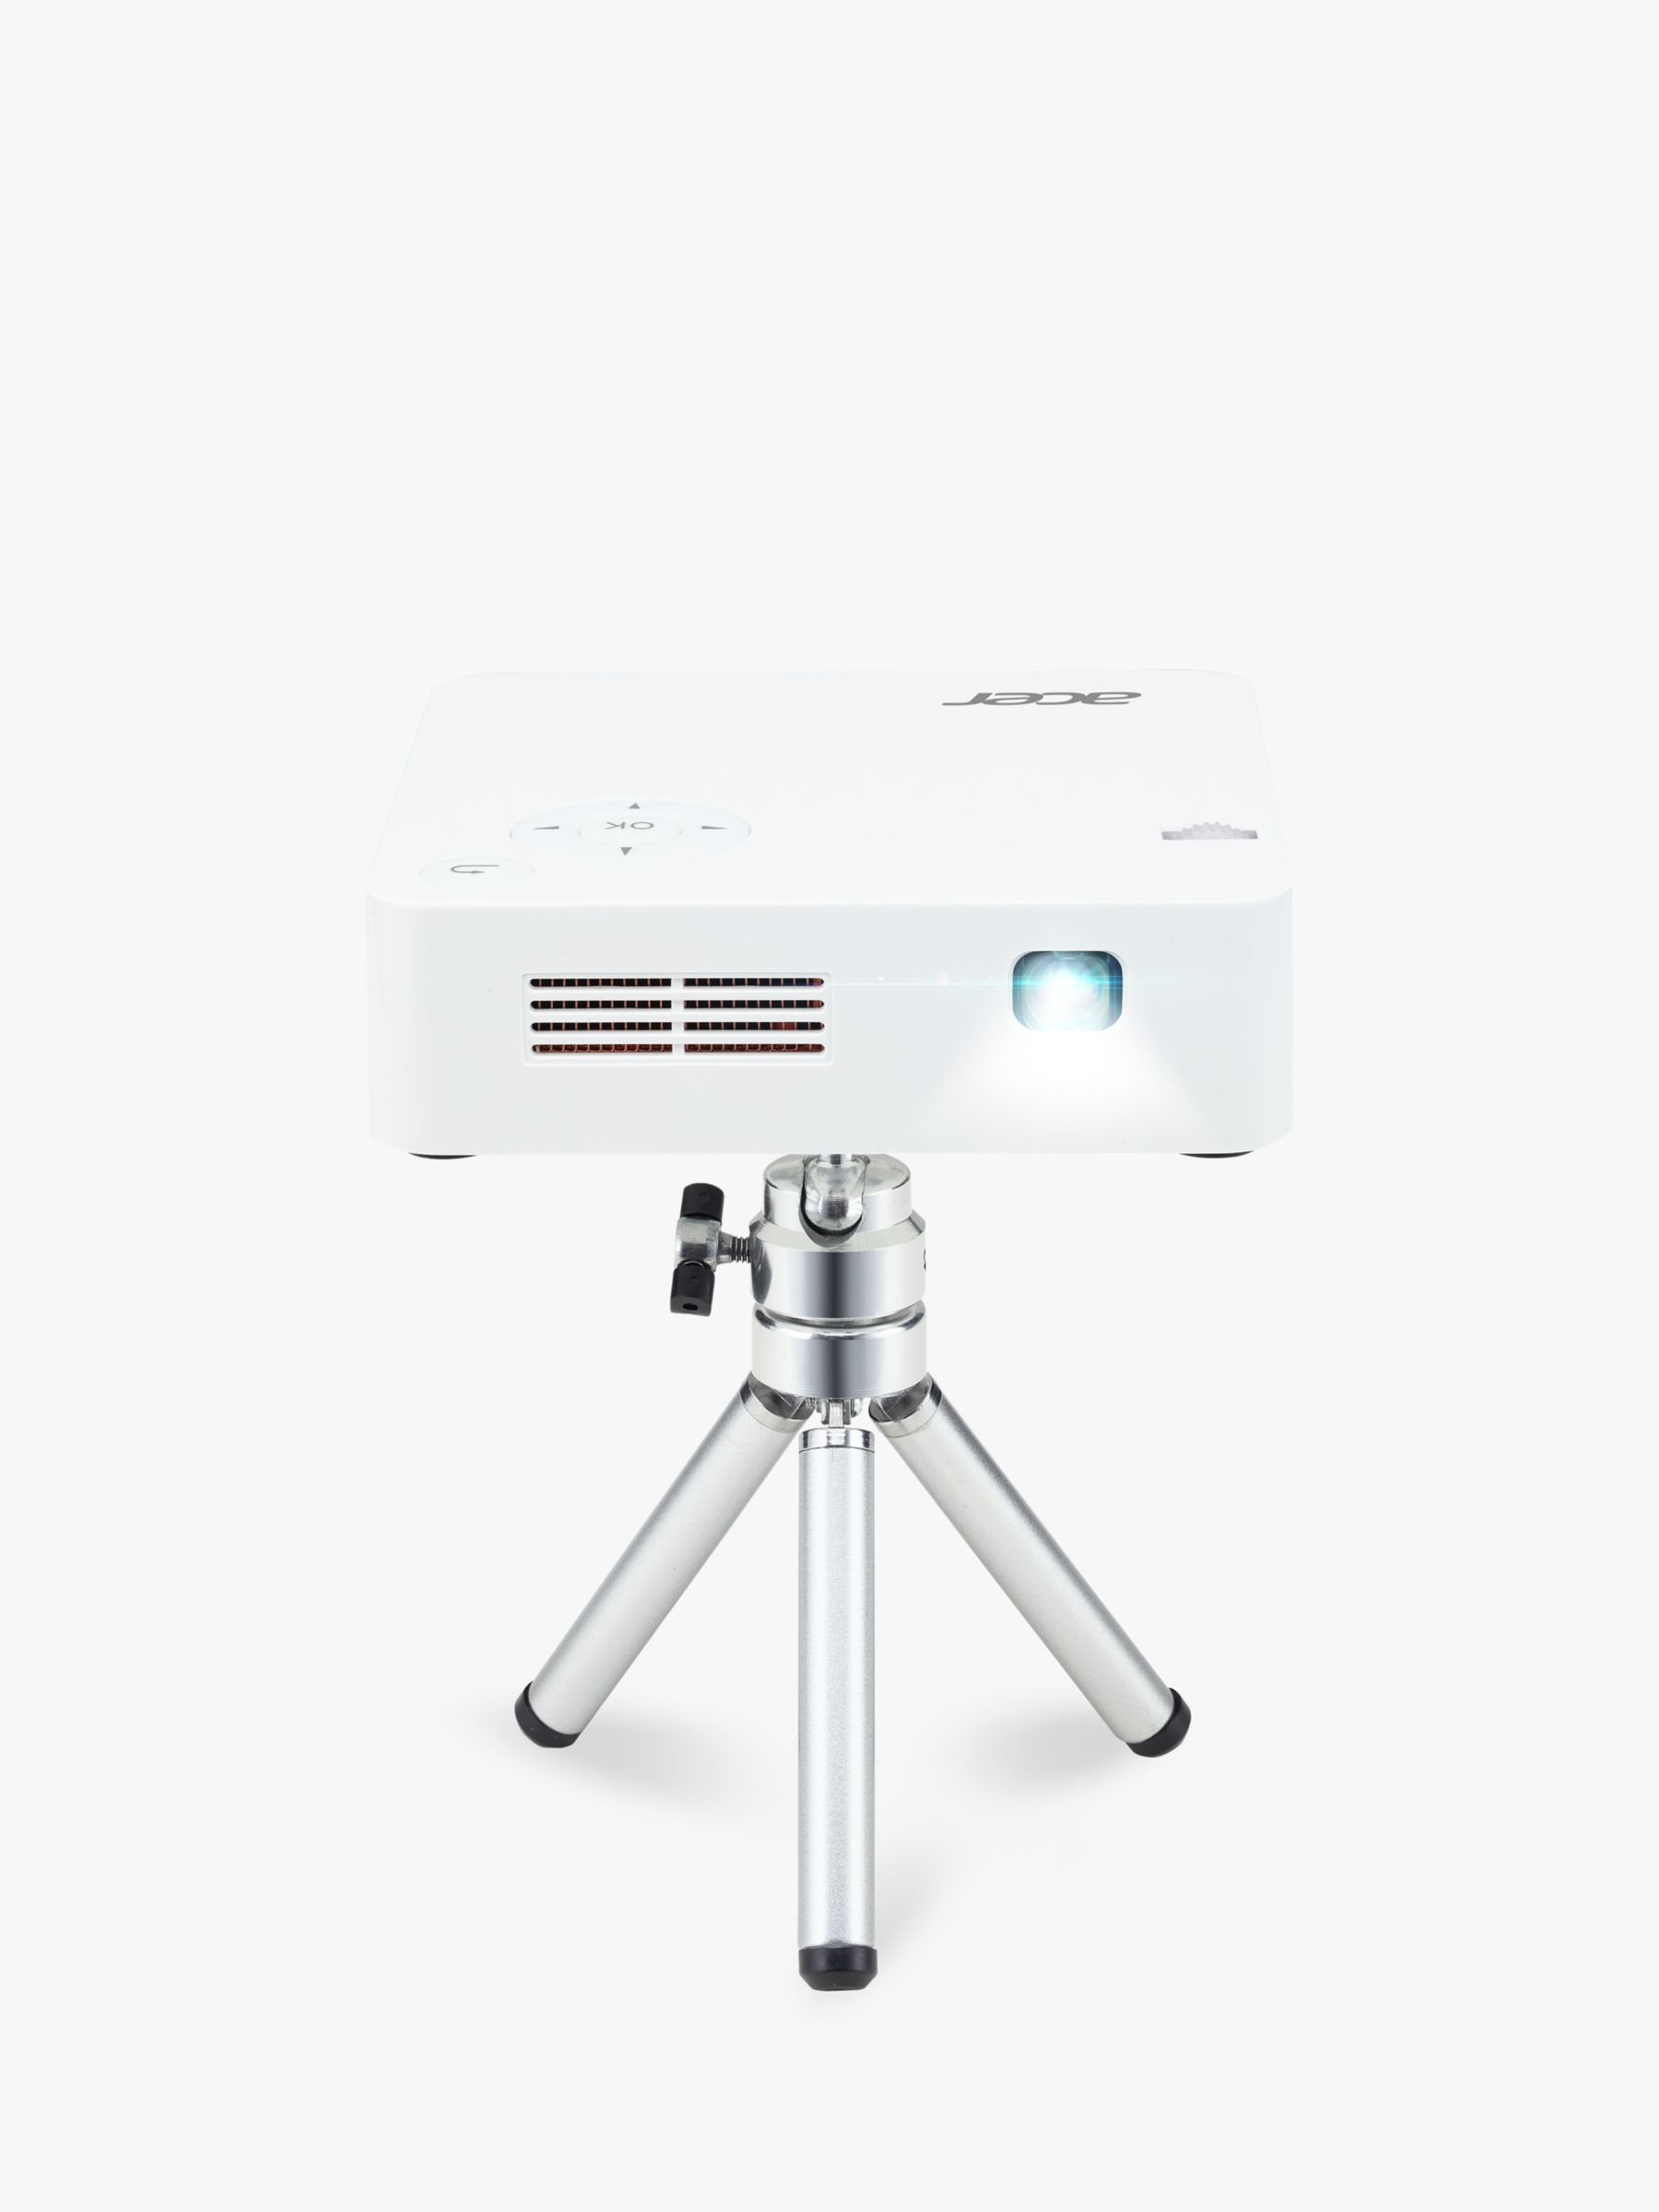 Acer C202i Portable Projector, 300 Lumens